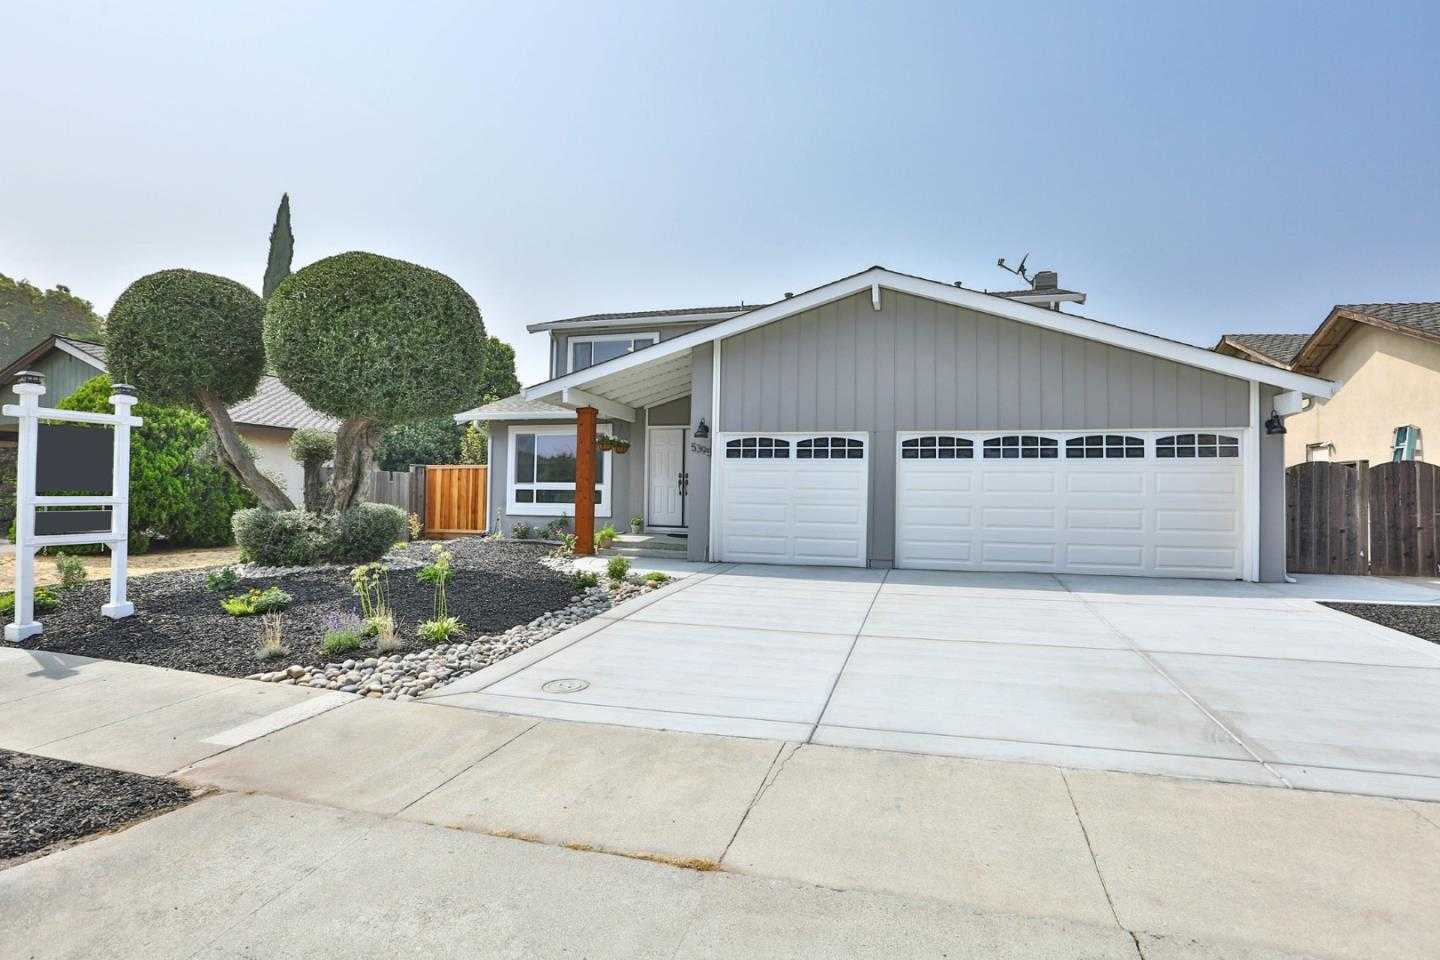 $1,098,000 - 4Br/3Ba -  for Sale in San Jose